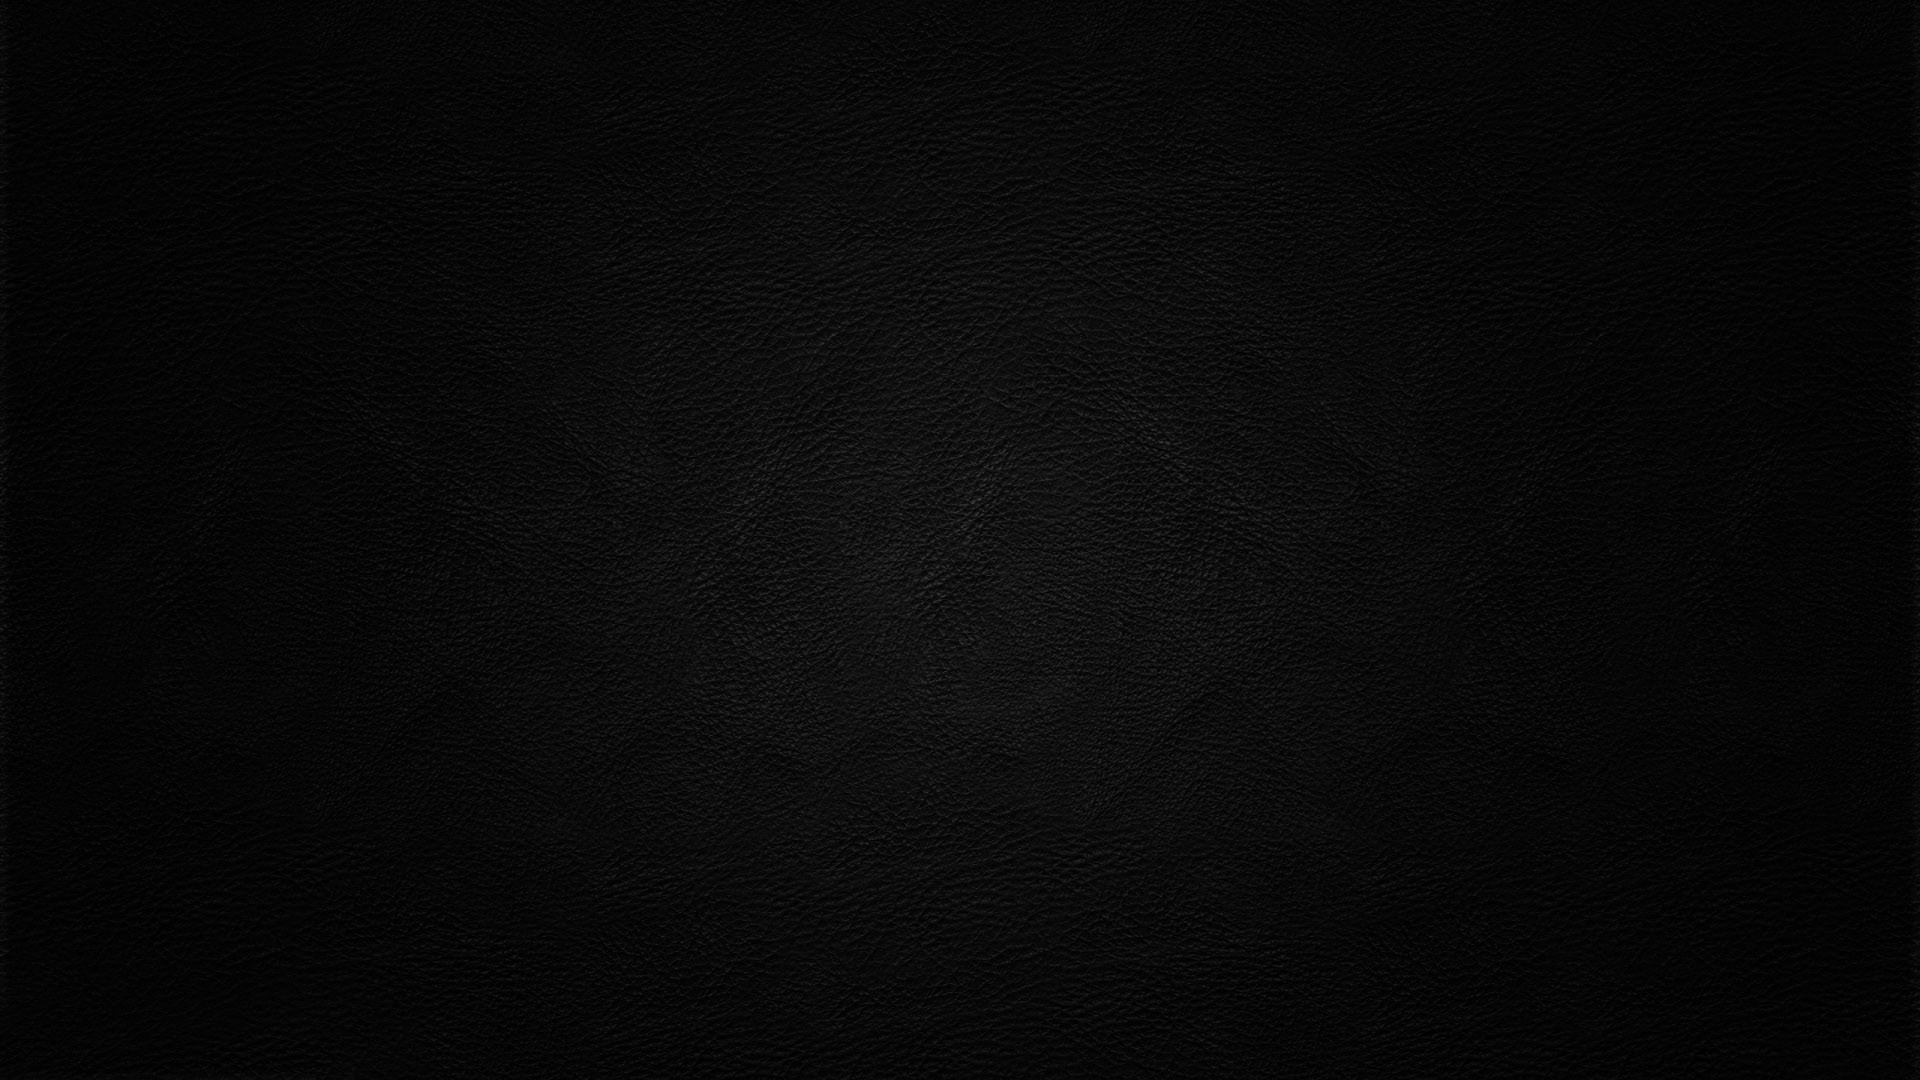 Black Leather Wallpaper